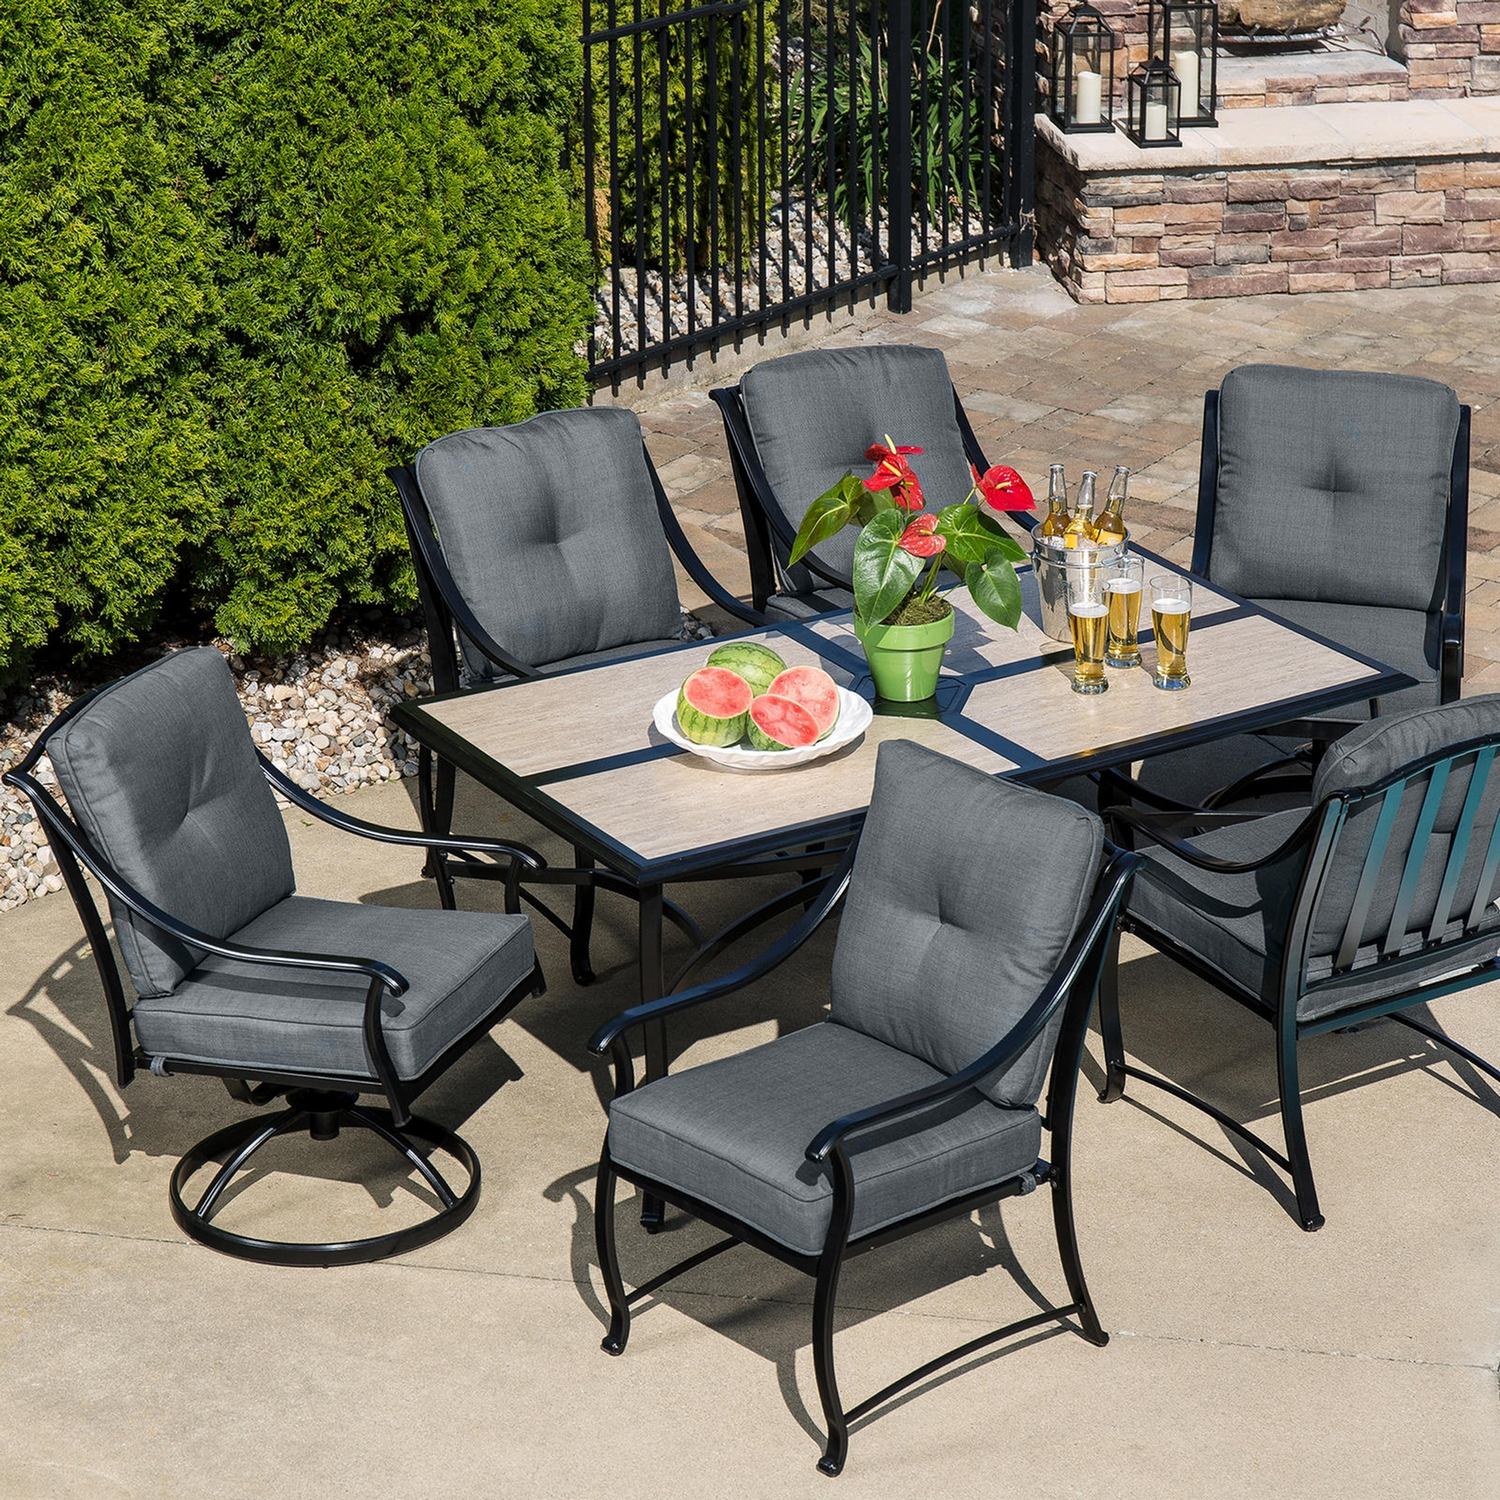 Contemporary Lazy Boy Patio Furniture Covers Modern with regard to sizing 1500 X 1500